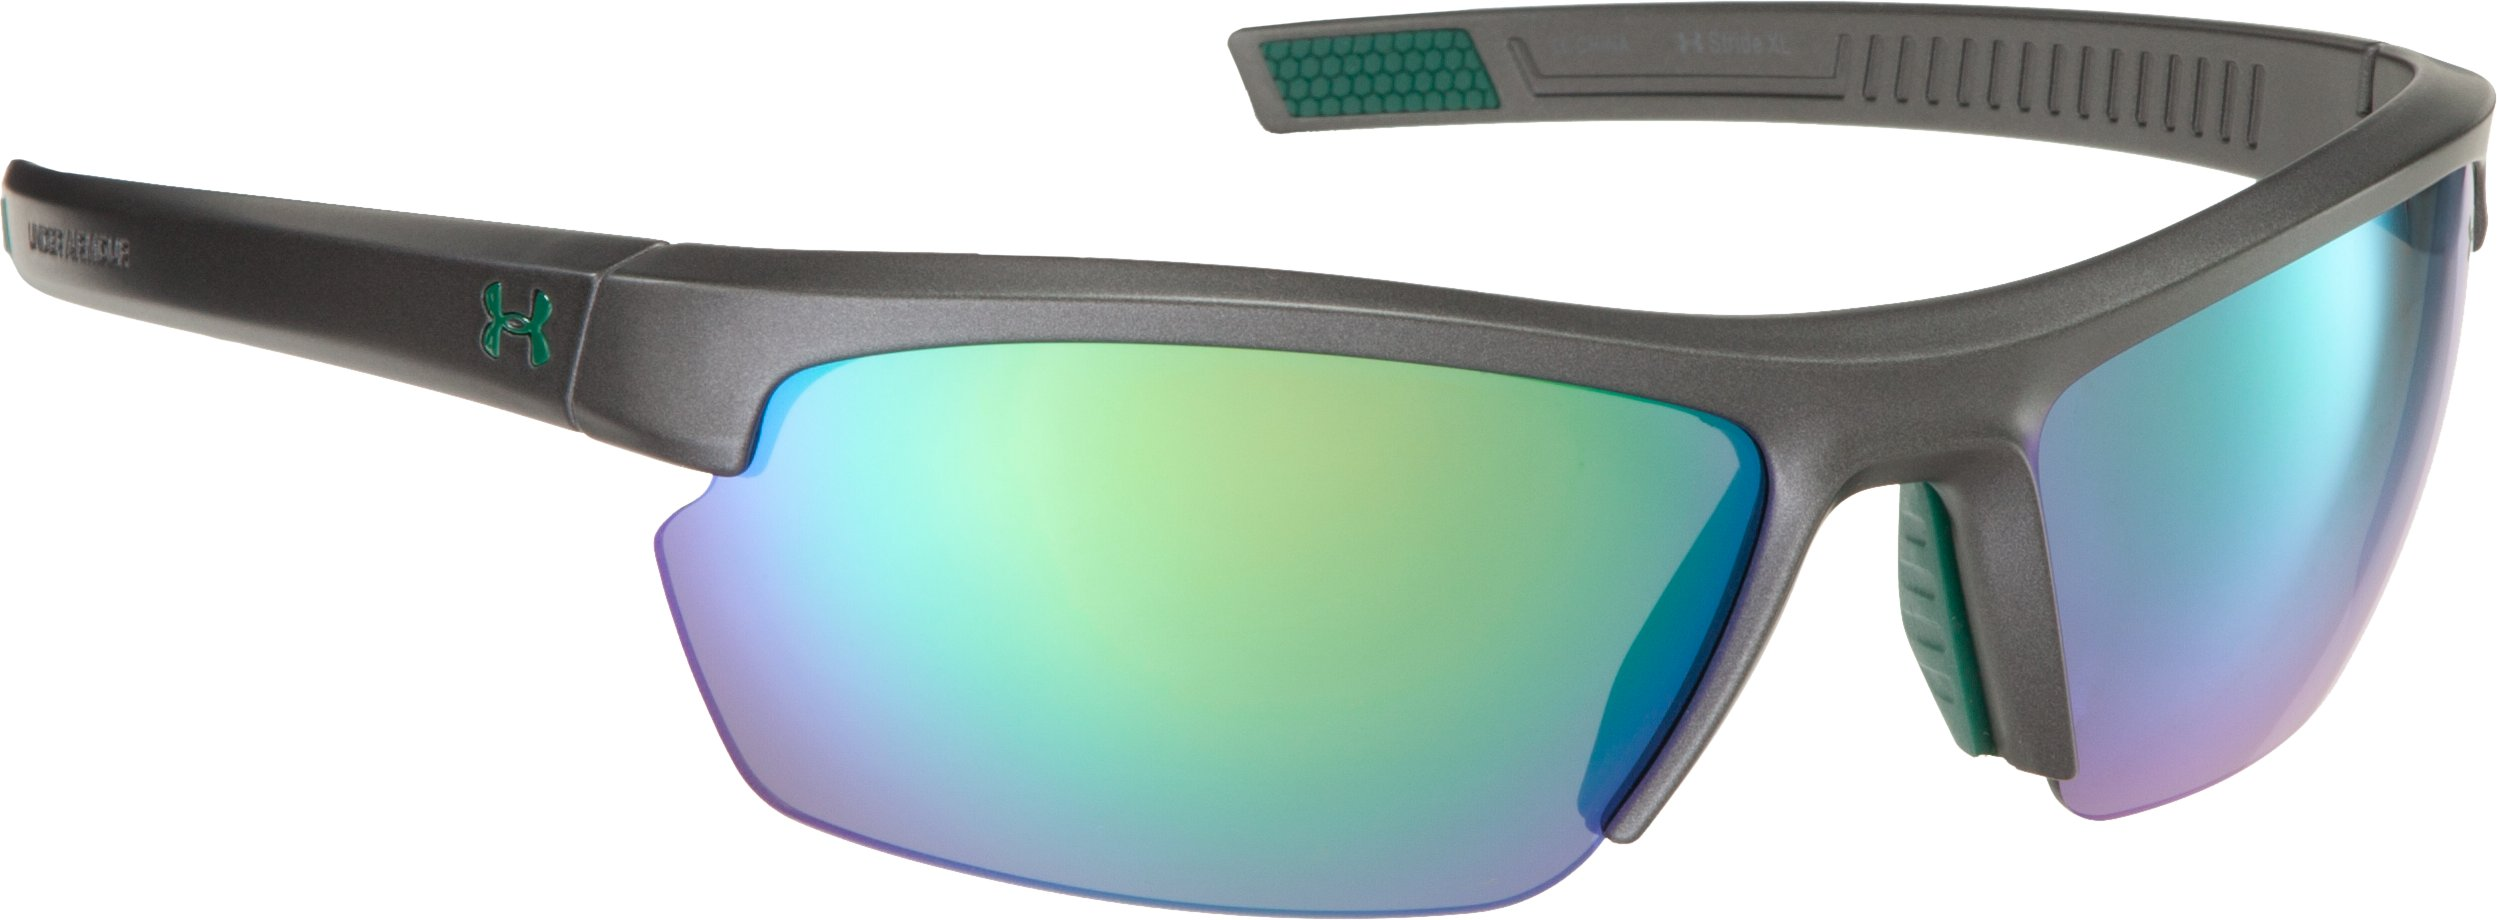 UA Stride XL Multiflection™ Sunglasses, Carbon